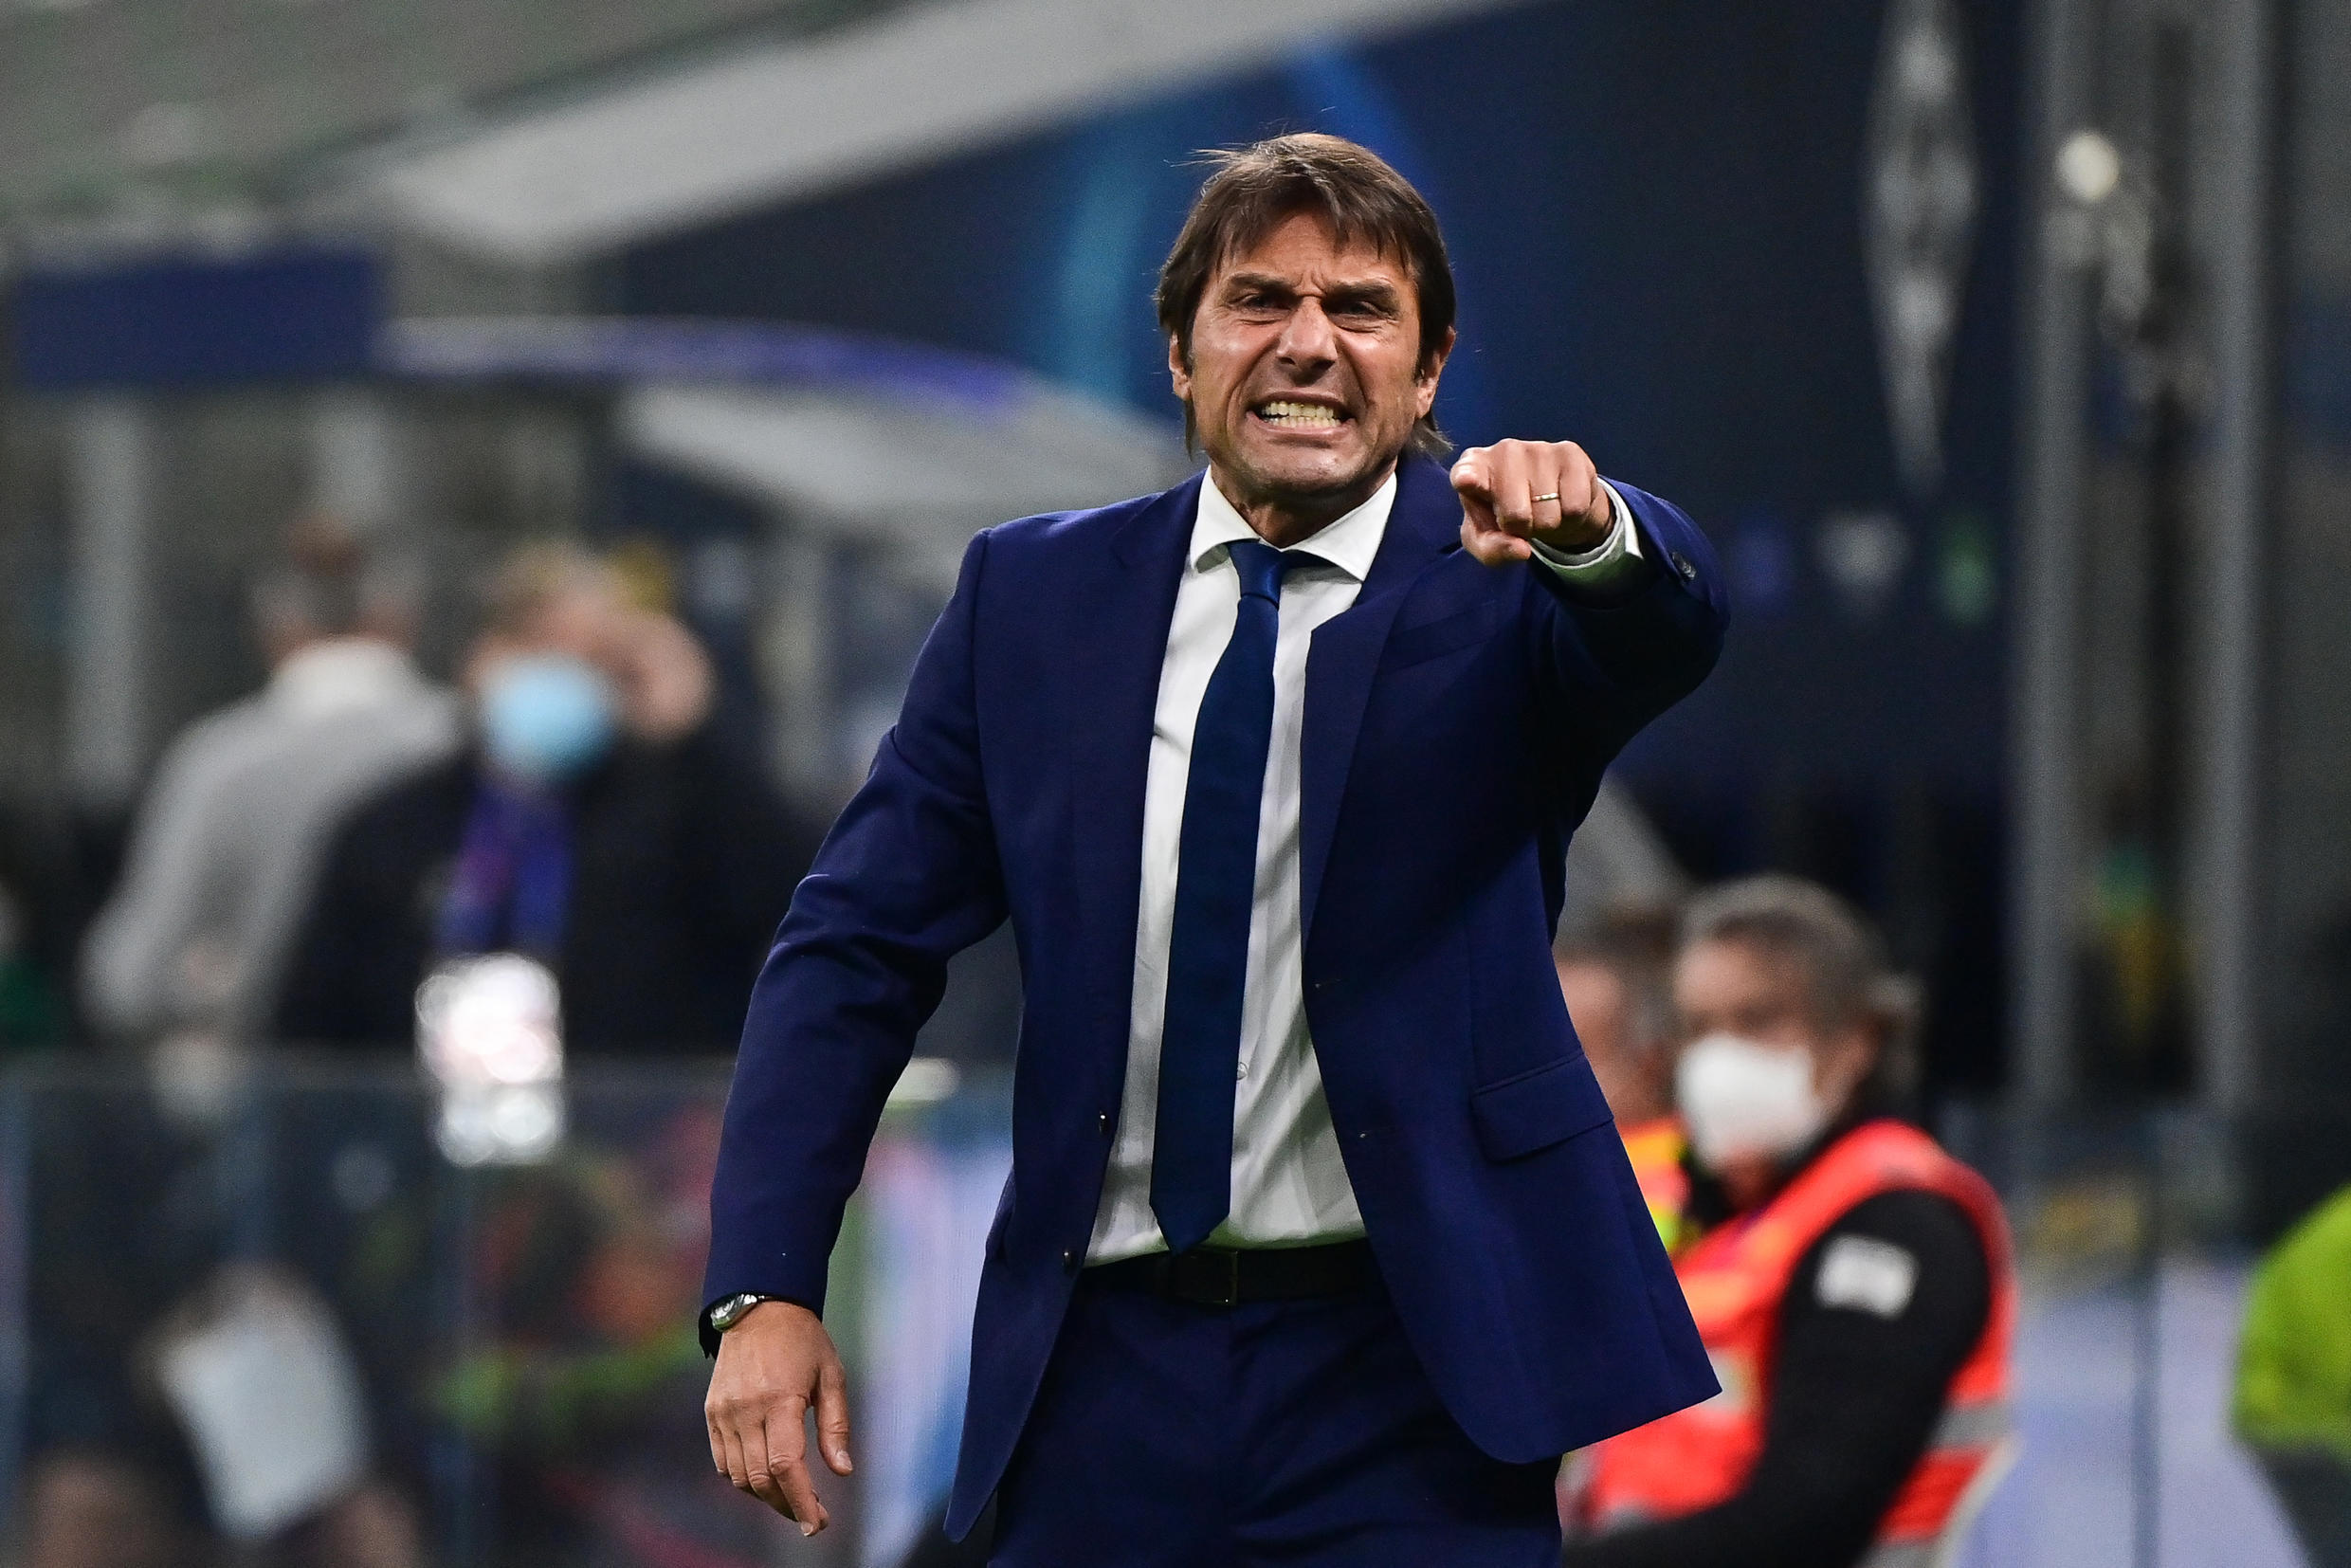 Antonio Conte's Inter Milan are bottom of Group B before hosting Real Madrid.